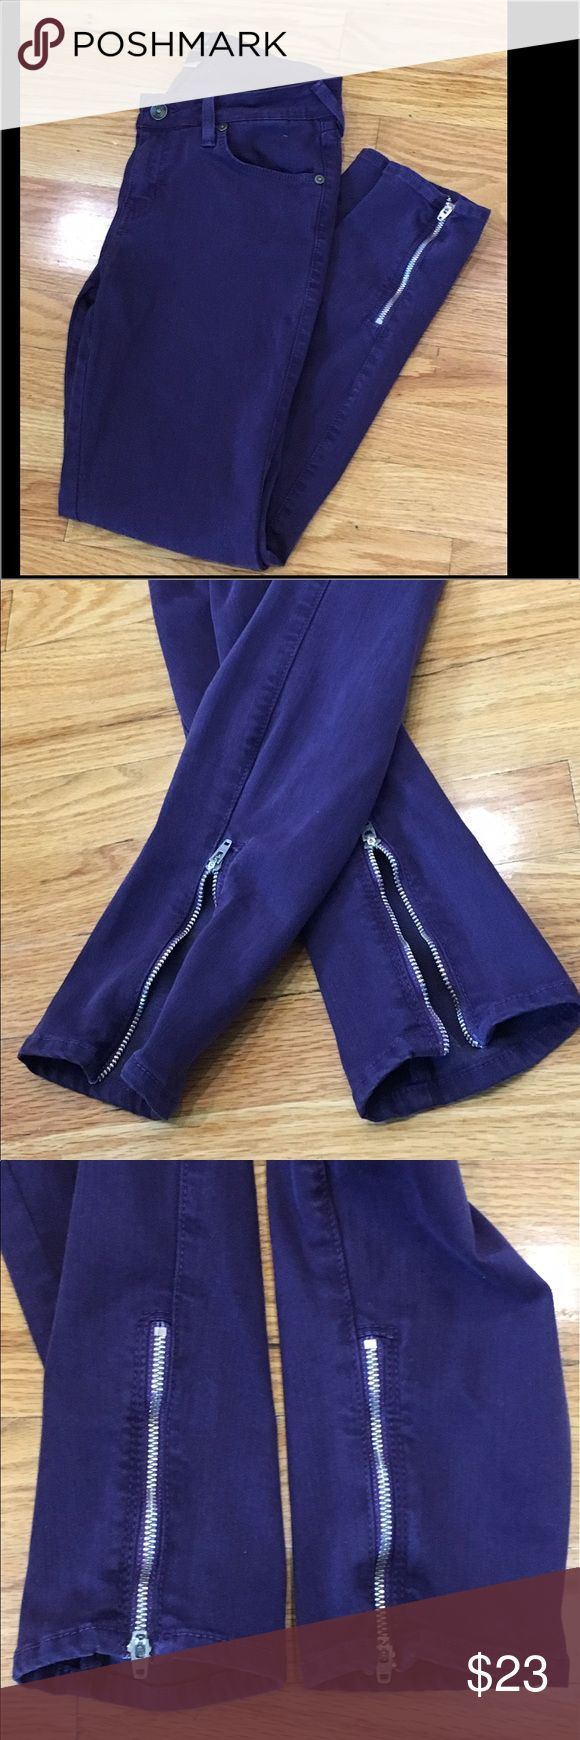 """Skinny Jeans Plum Skinny Jeans by Just Black. Size 27. Silver zippers on both sides at bottom. Clean with no stains or holes. Super comfy to wear. 32 percent cotton/42 lyocell/15 rayon/8 polyester/3 spandex. Inseam is 26"""". Just Black  Jeans Skinny"""